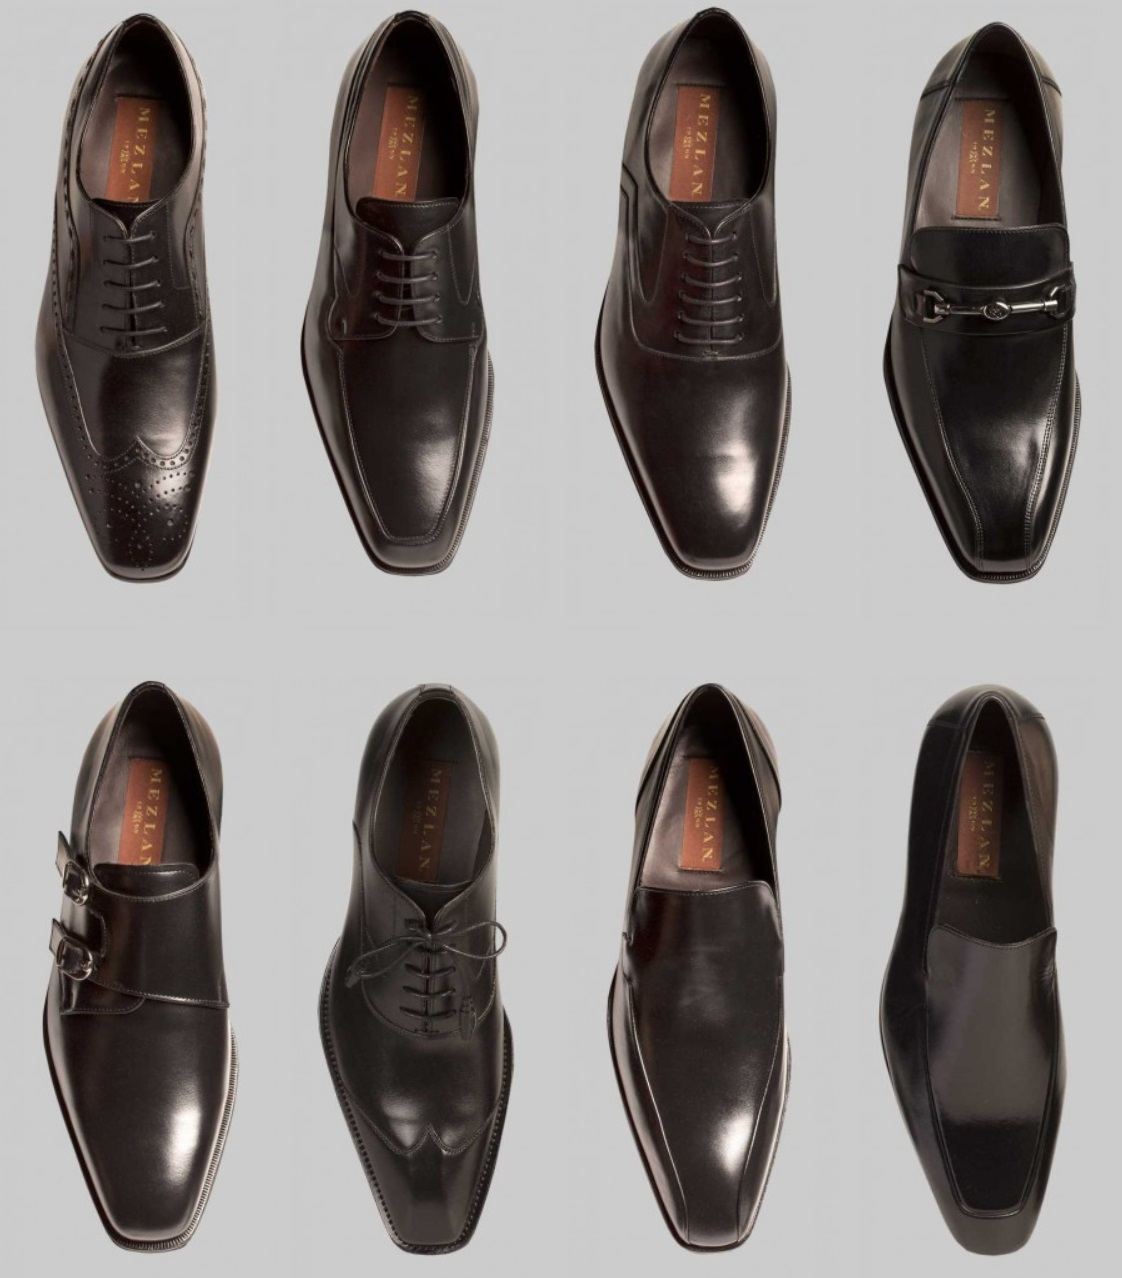 Mezlan Shoes At Up To 50% Off – From